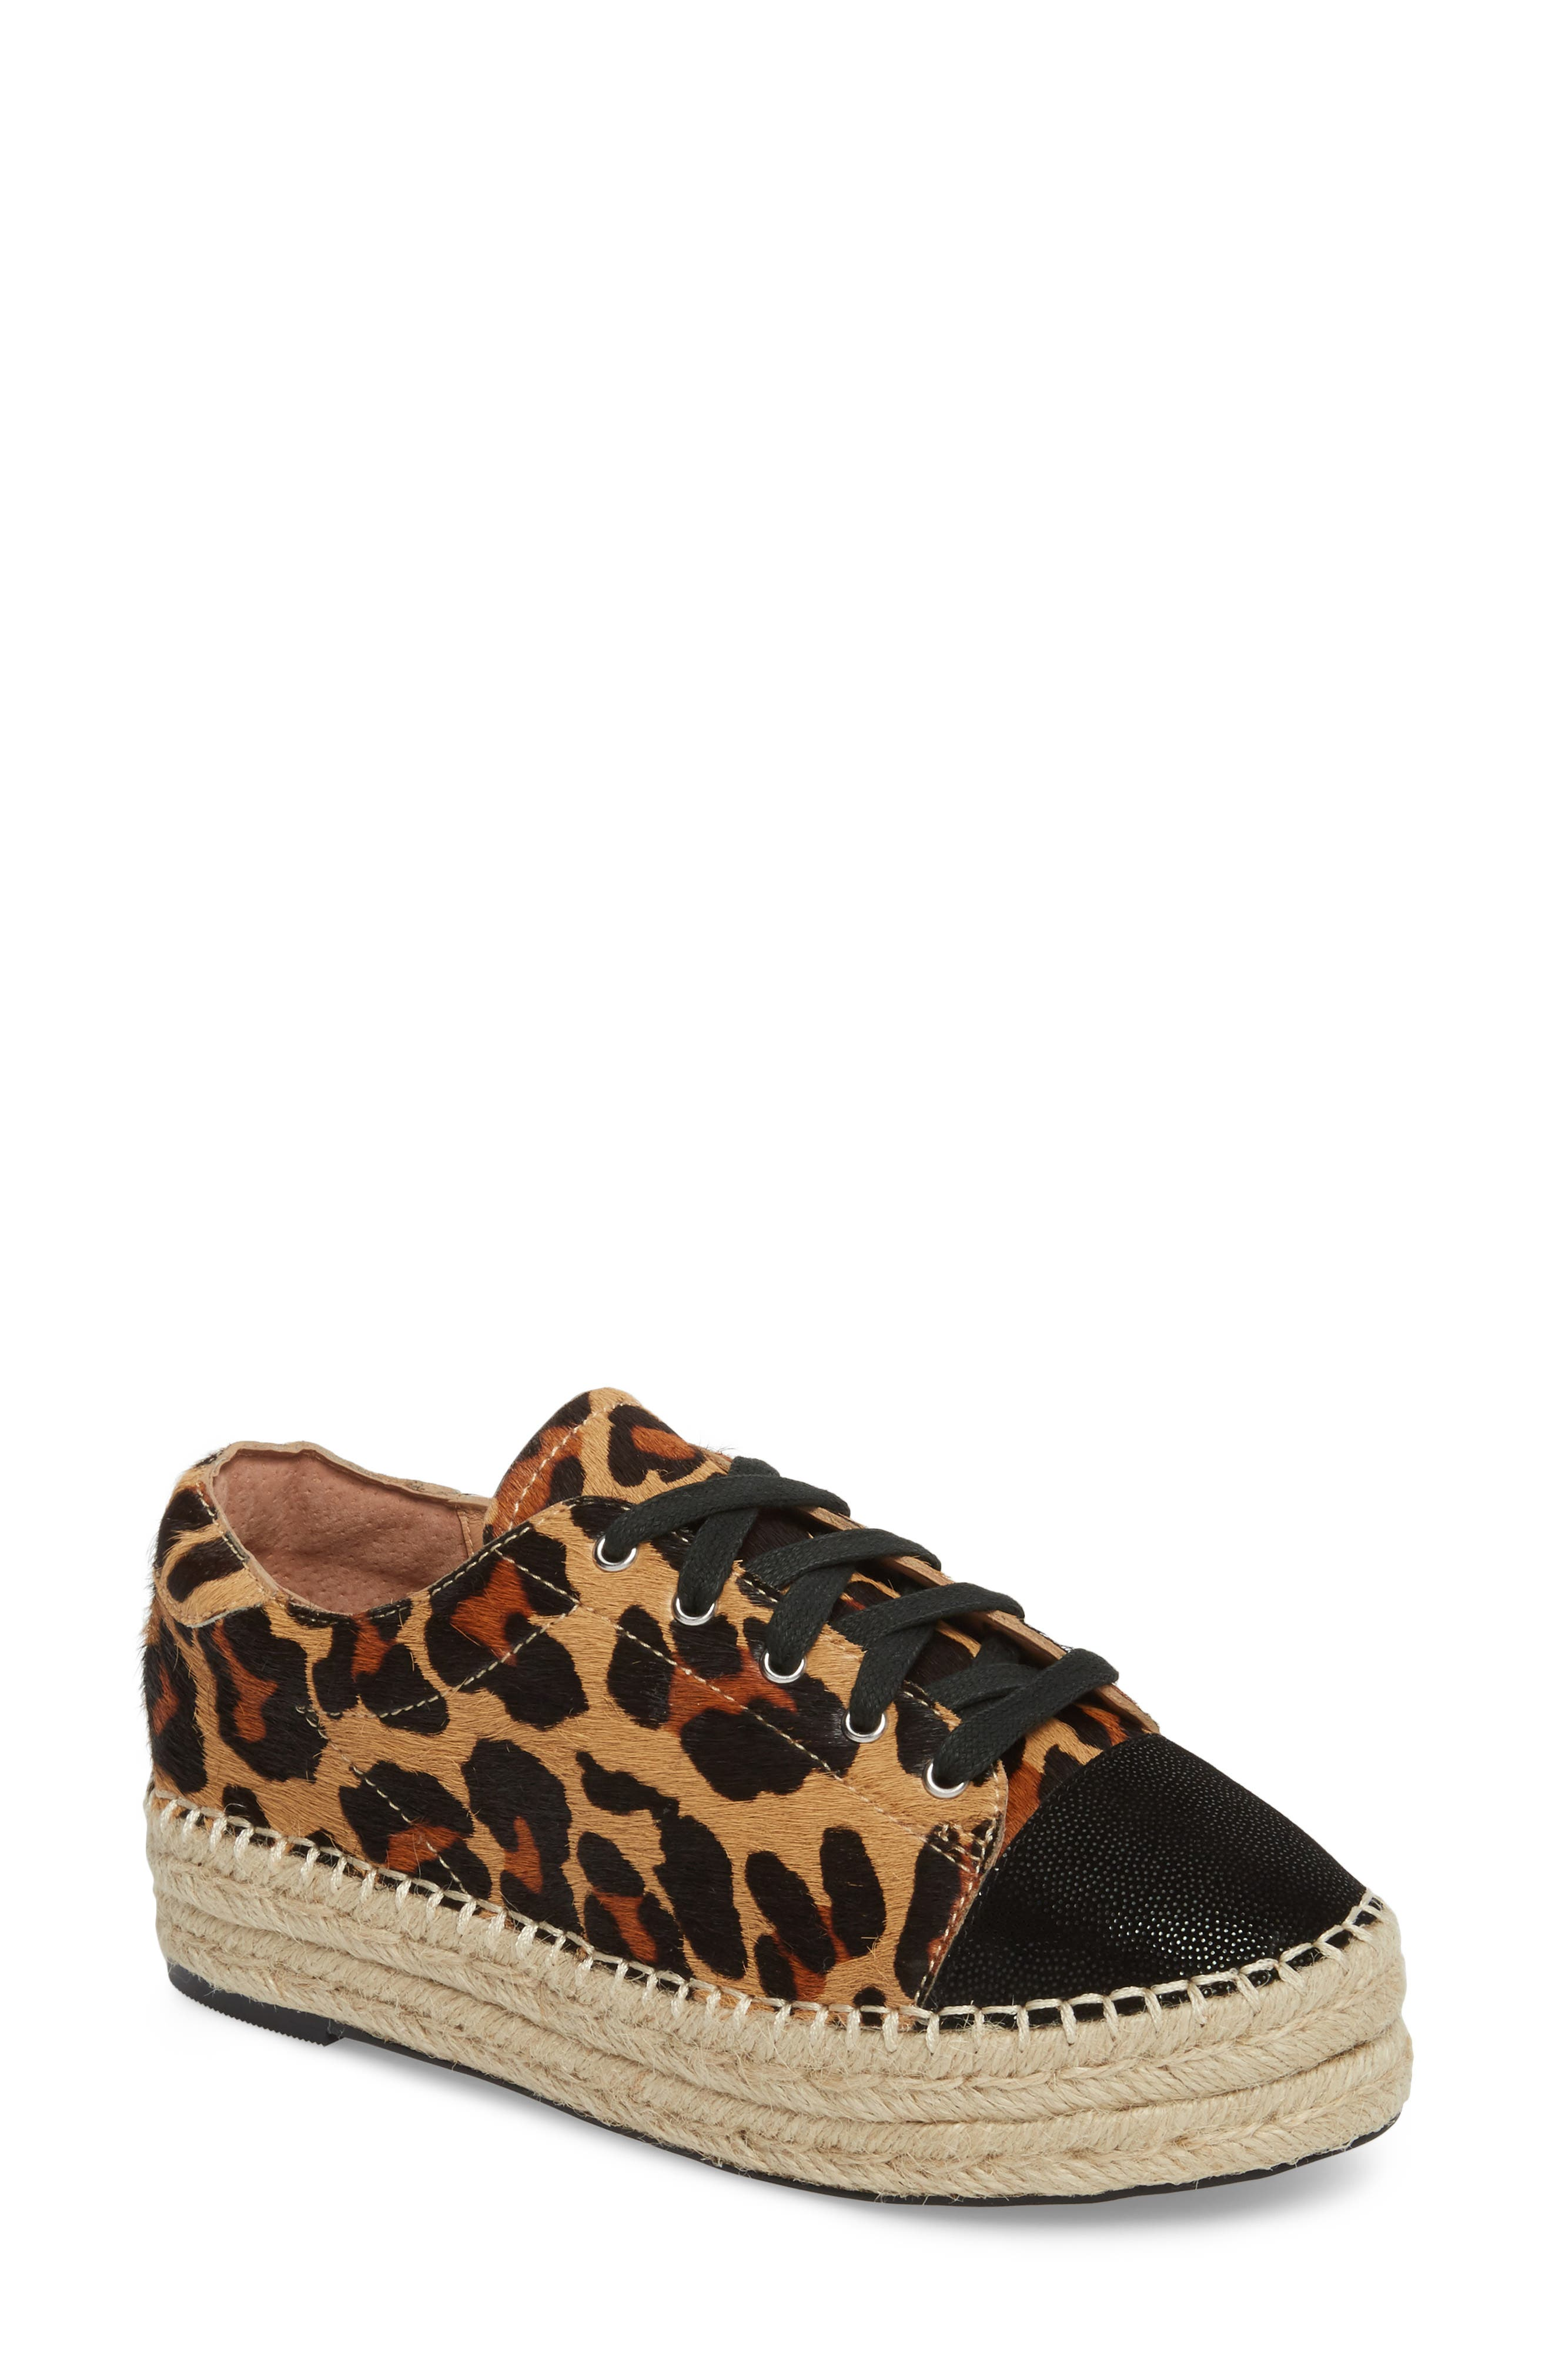 Sierra II Genuine Calf Hair Lace-Up Espadrille,                         Main,                         color, 212